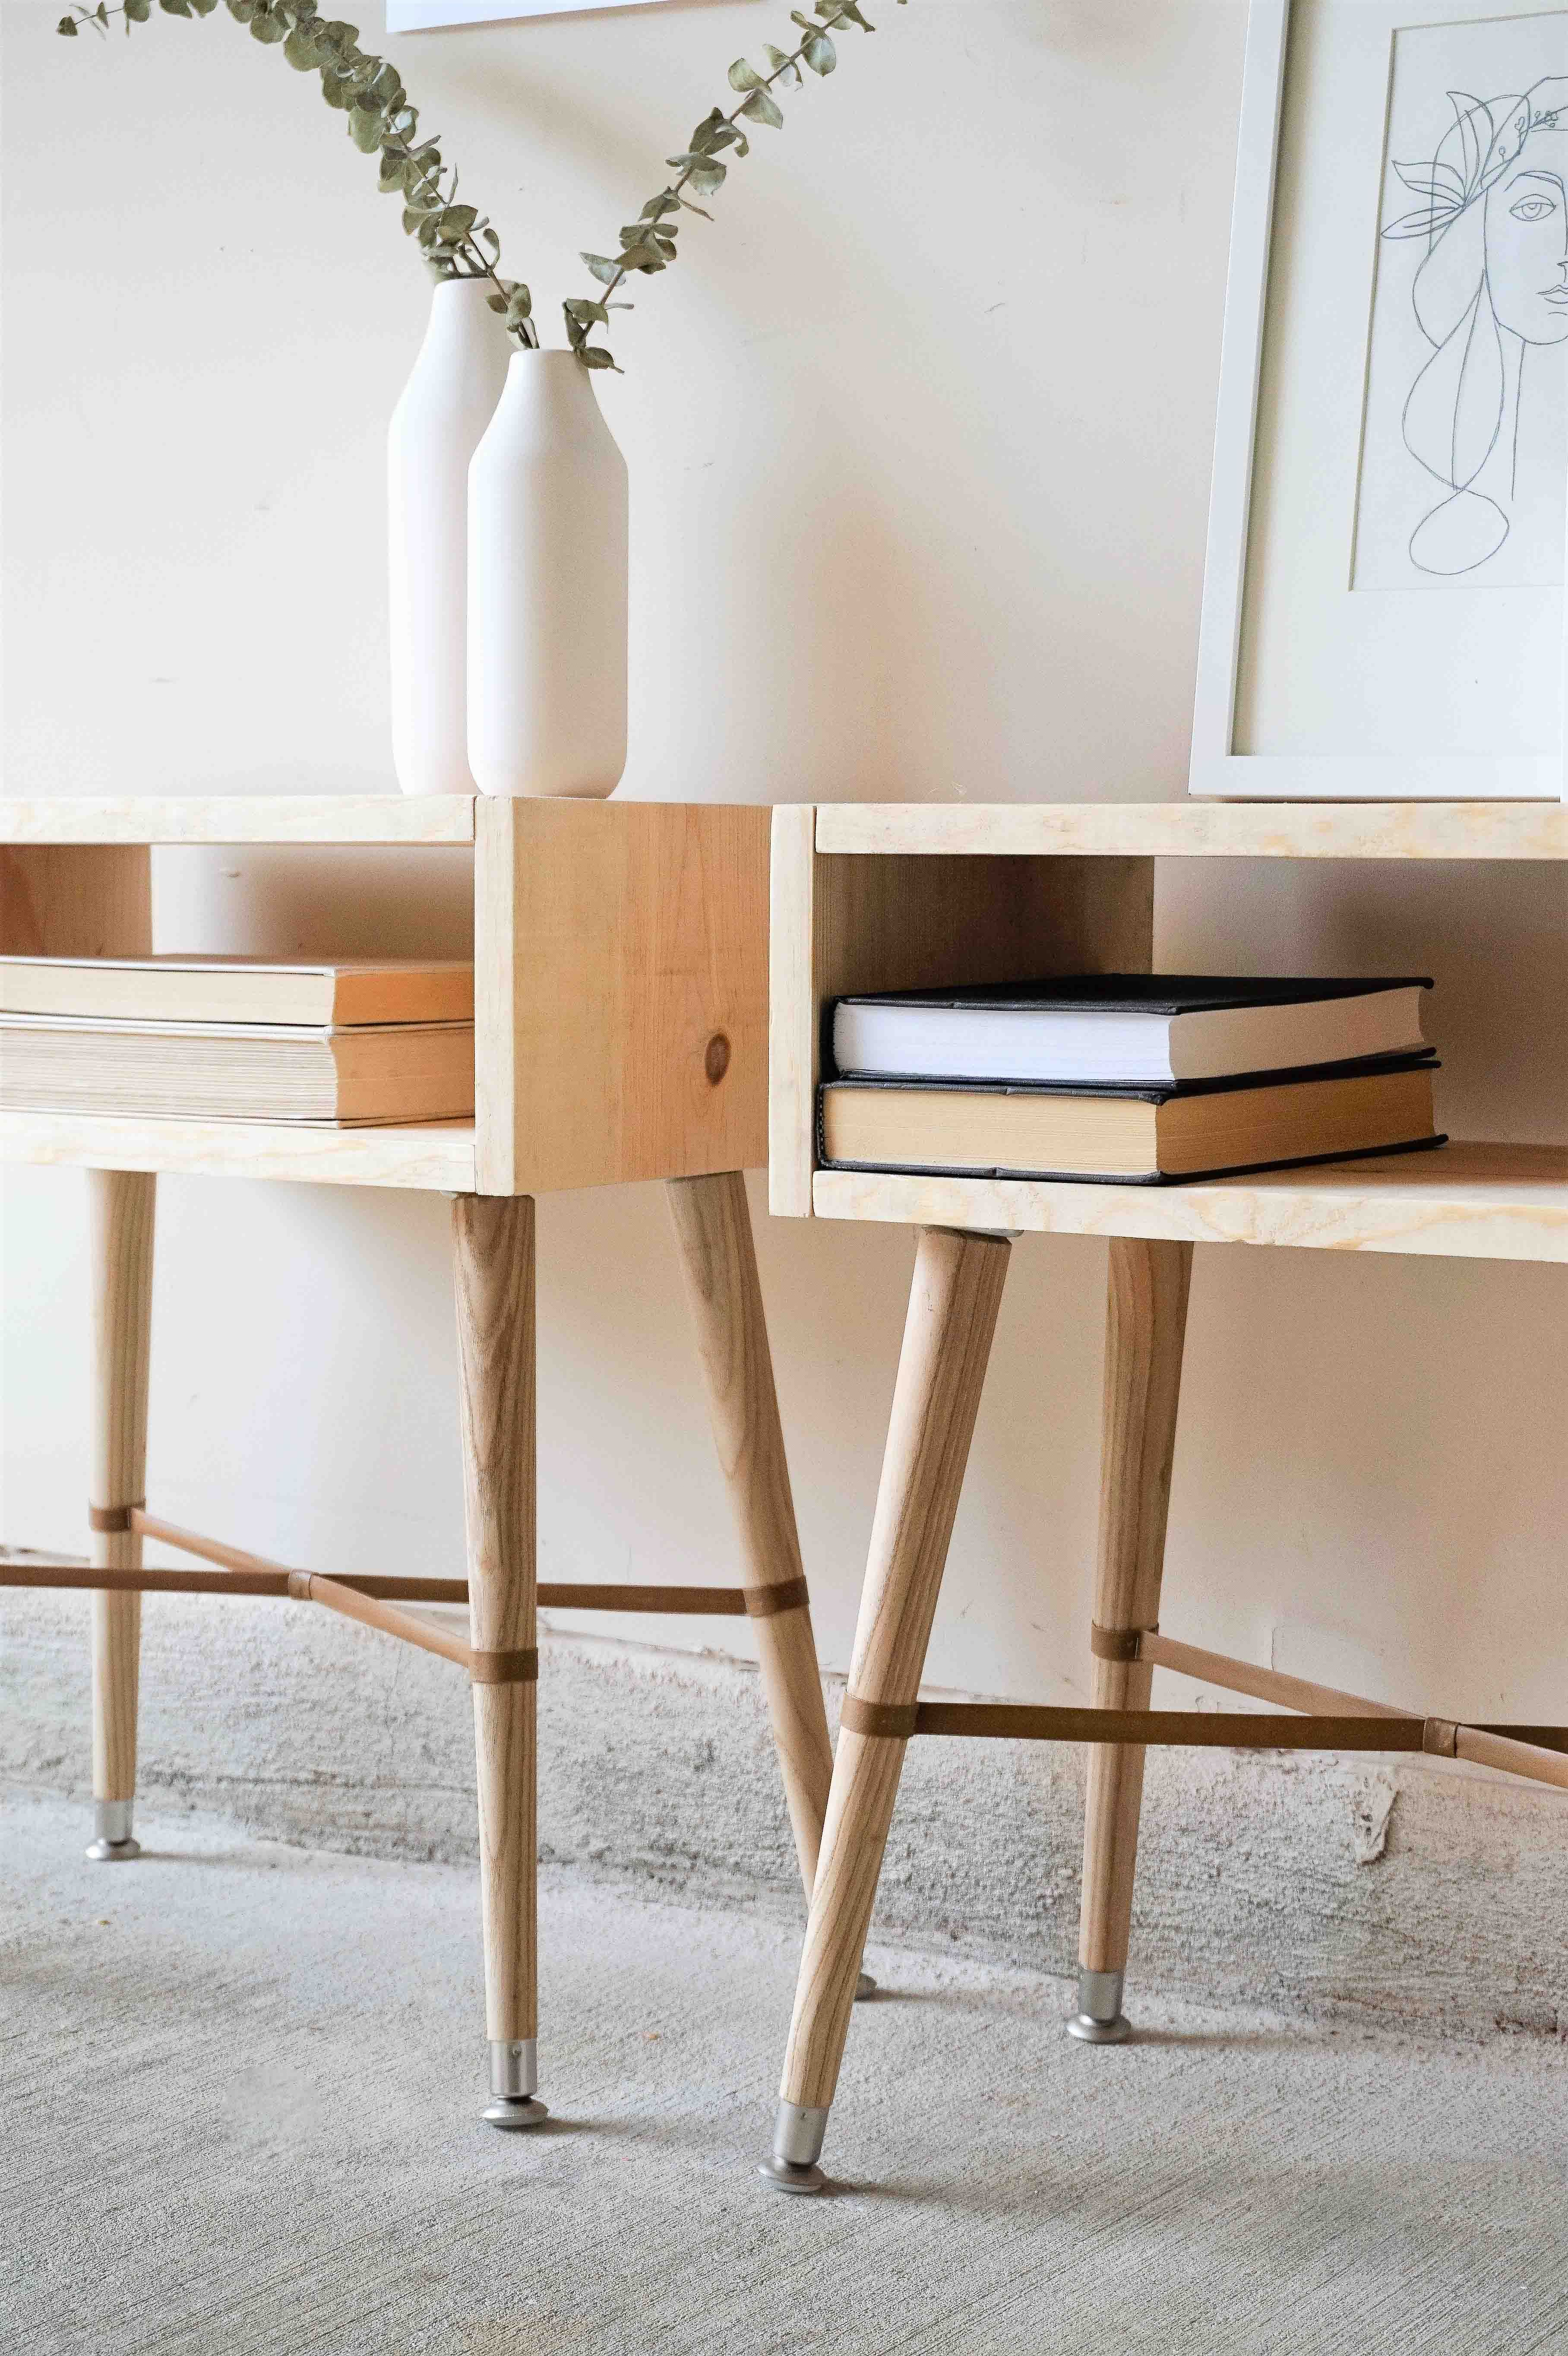 Yes, Virginia, You Can Build Your Own Nightstands | Home | Pinterest ...